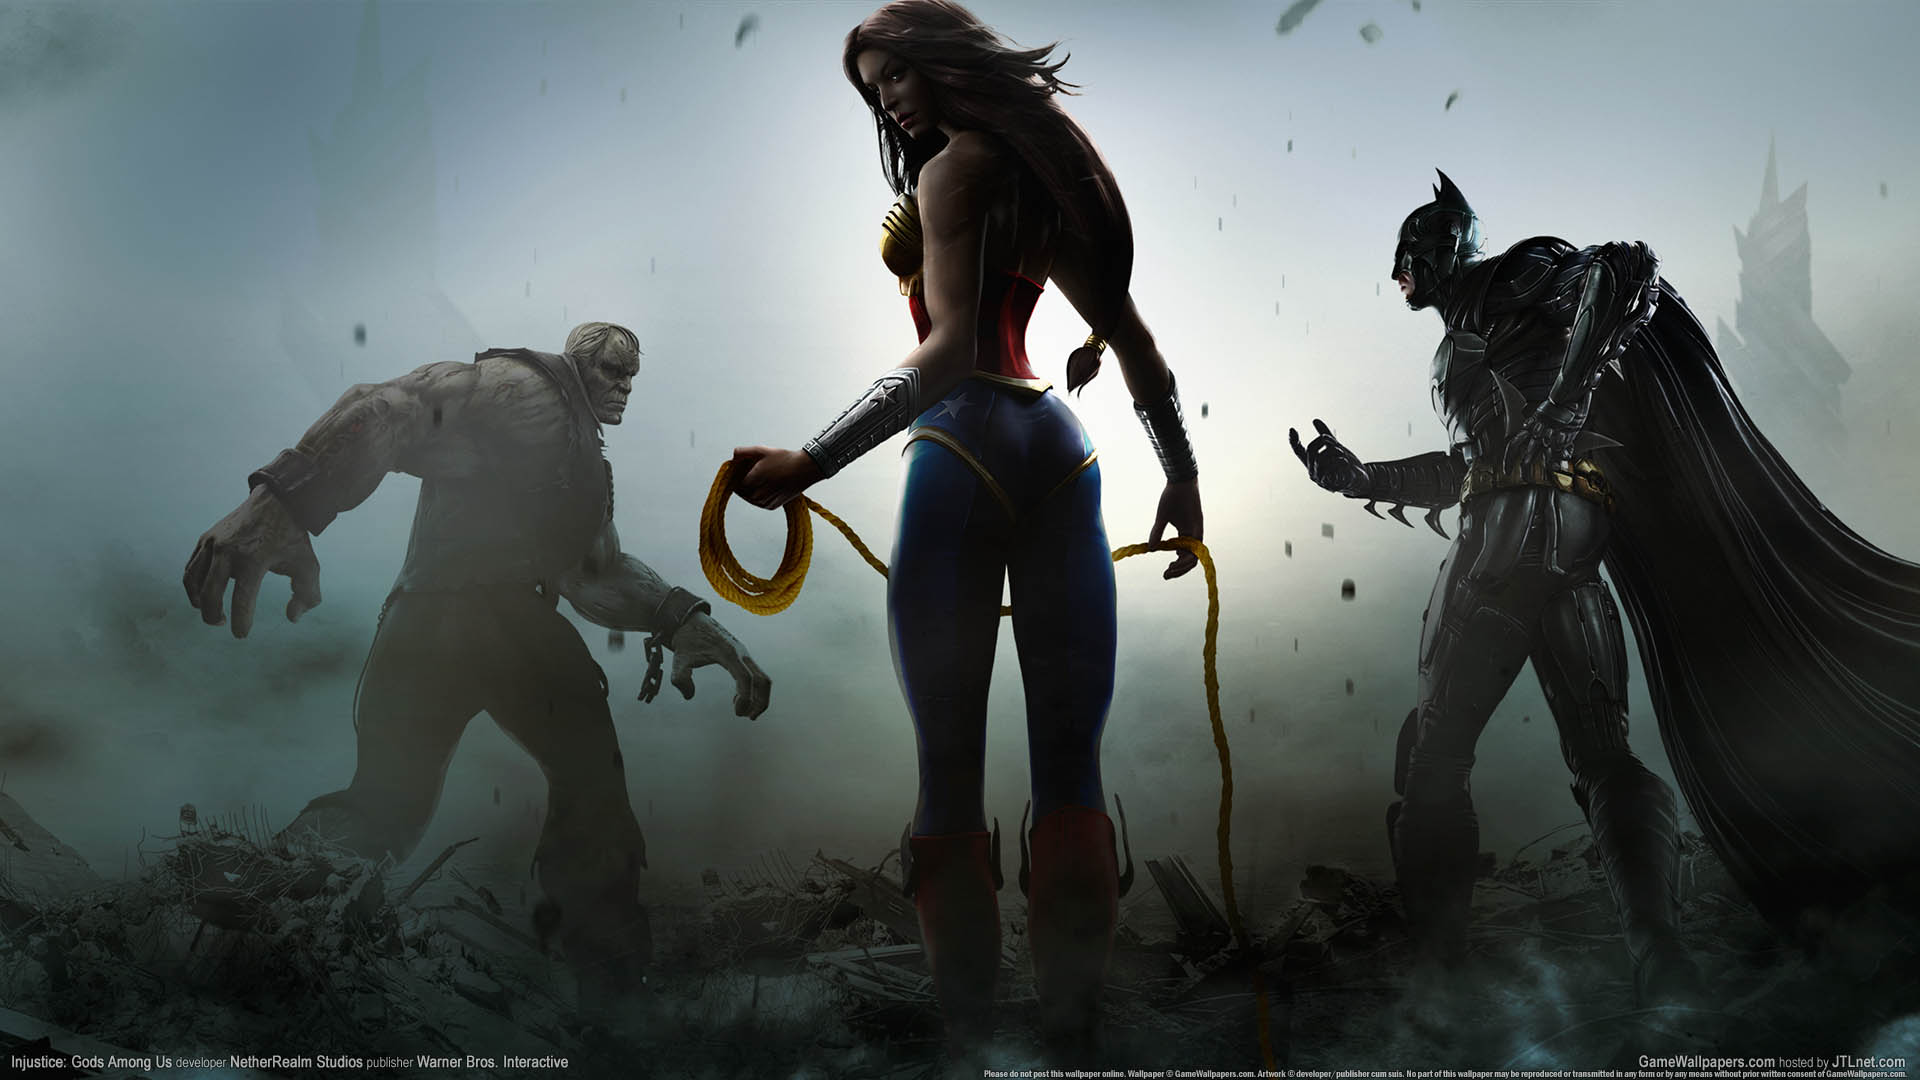 Gods among us wallpaper 09 1920x1080 injustice gods among us wallpaper 09 1920x1080 voltagebd Image collections